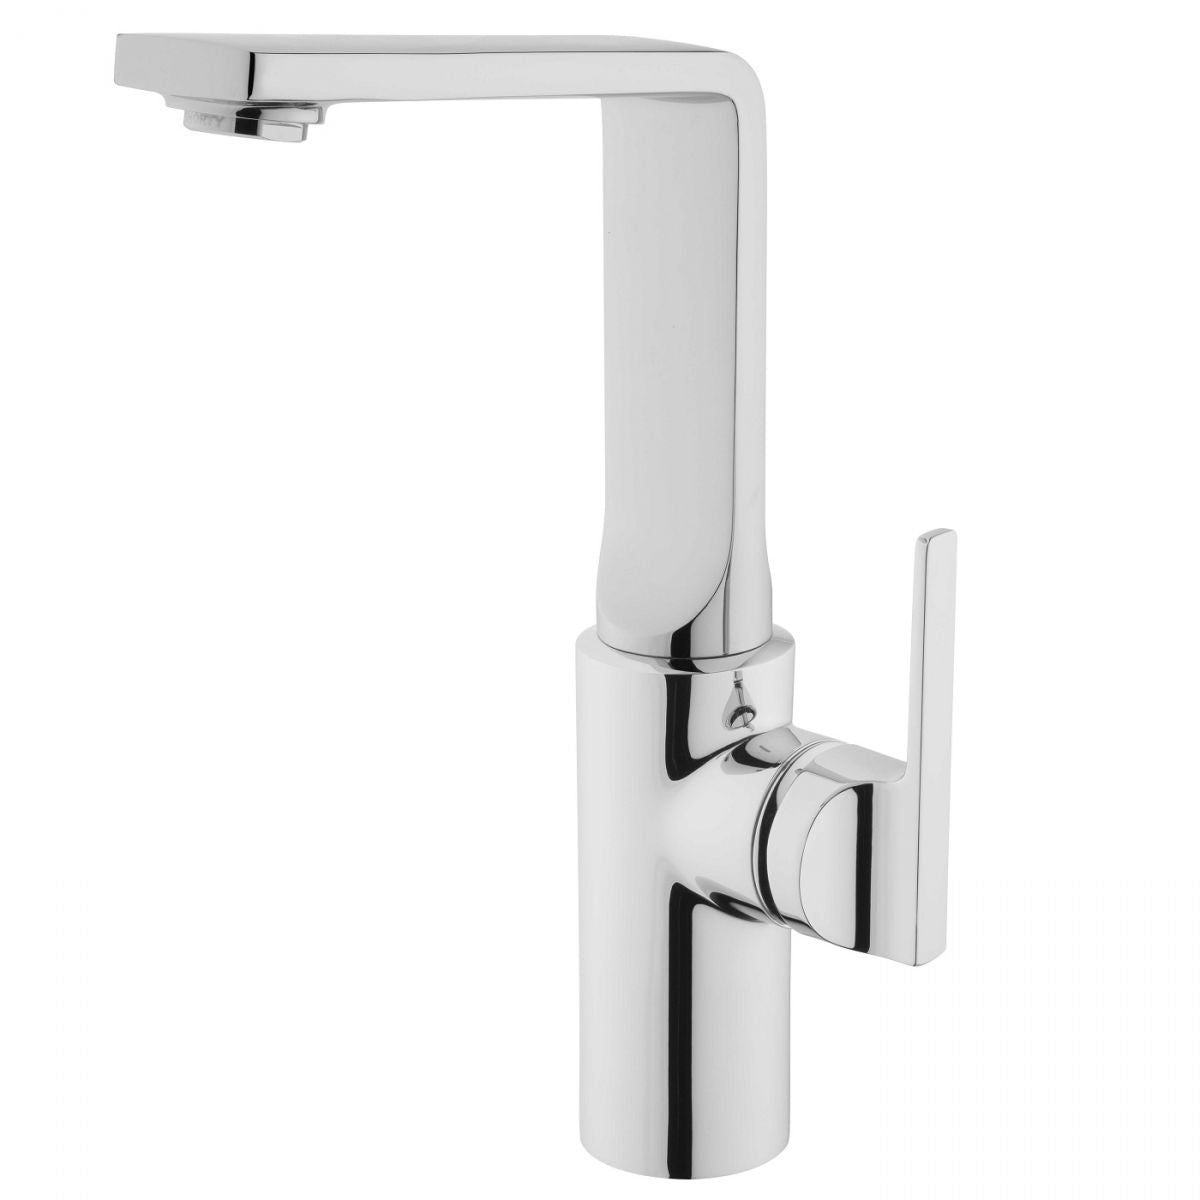 VitrA Suit L Tall Basin Mixer Tap